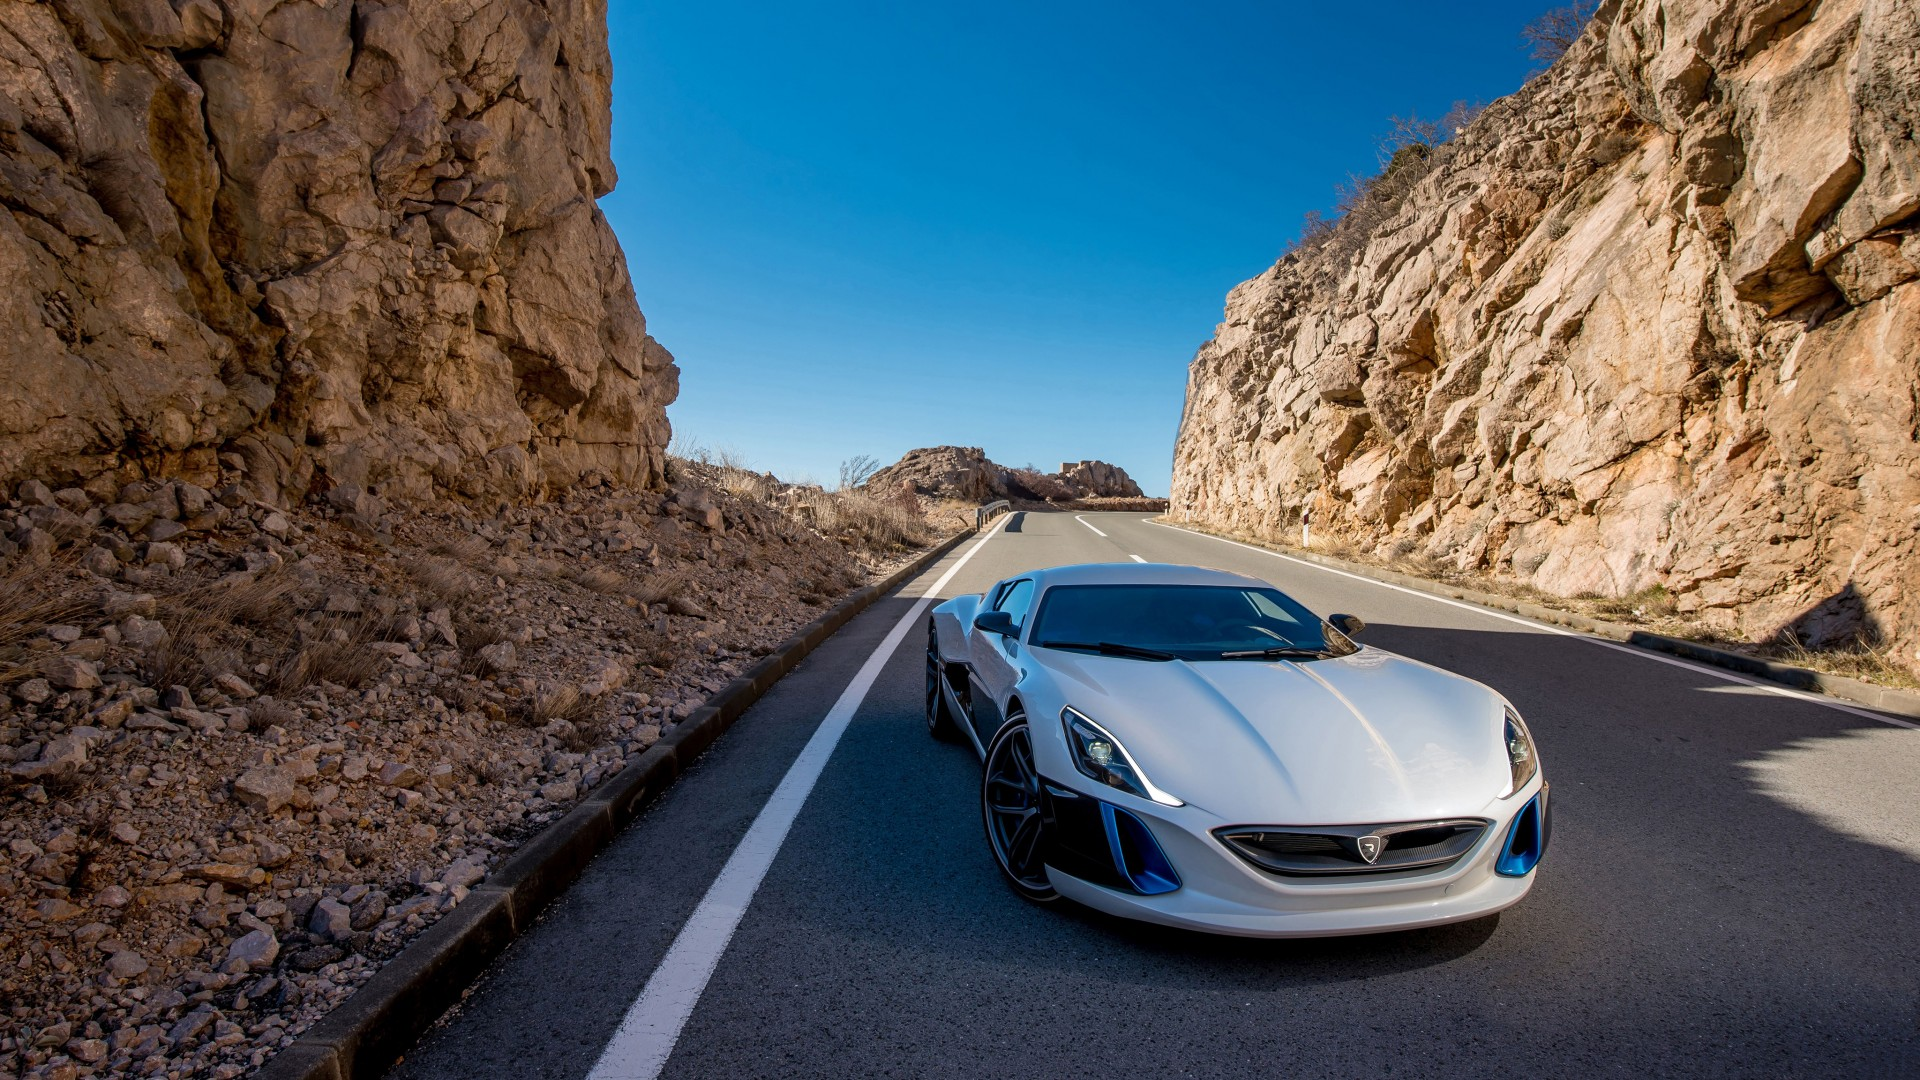 Rimac concept one 2017 4k wallpaper hd car wallpapers - 4k wallpaper for cars ...